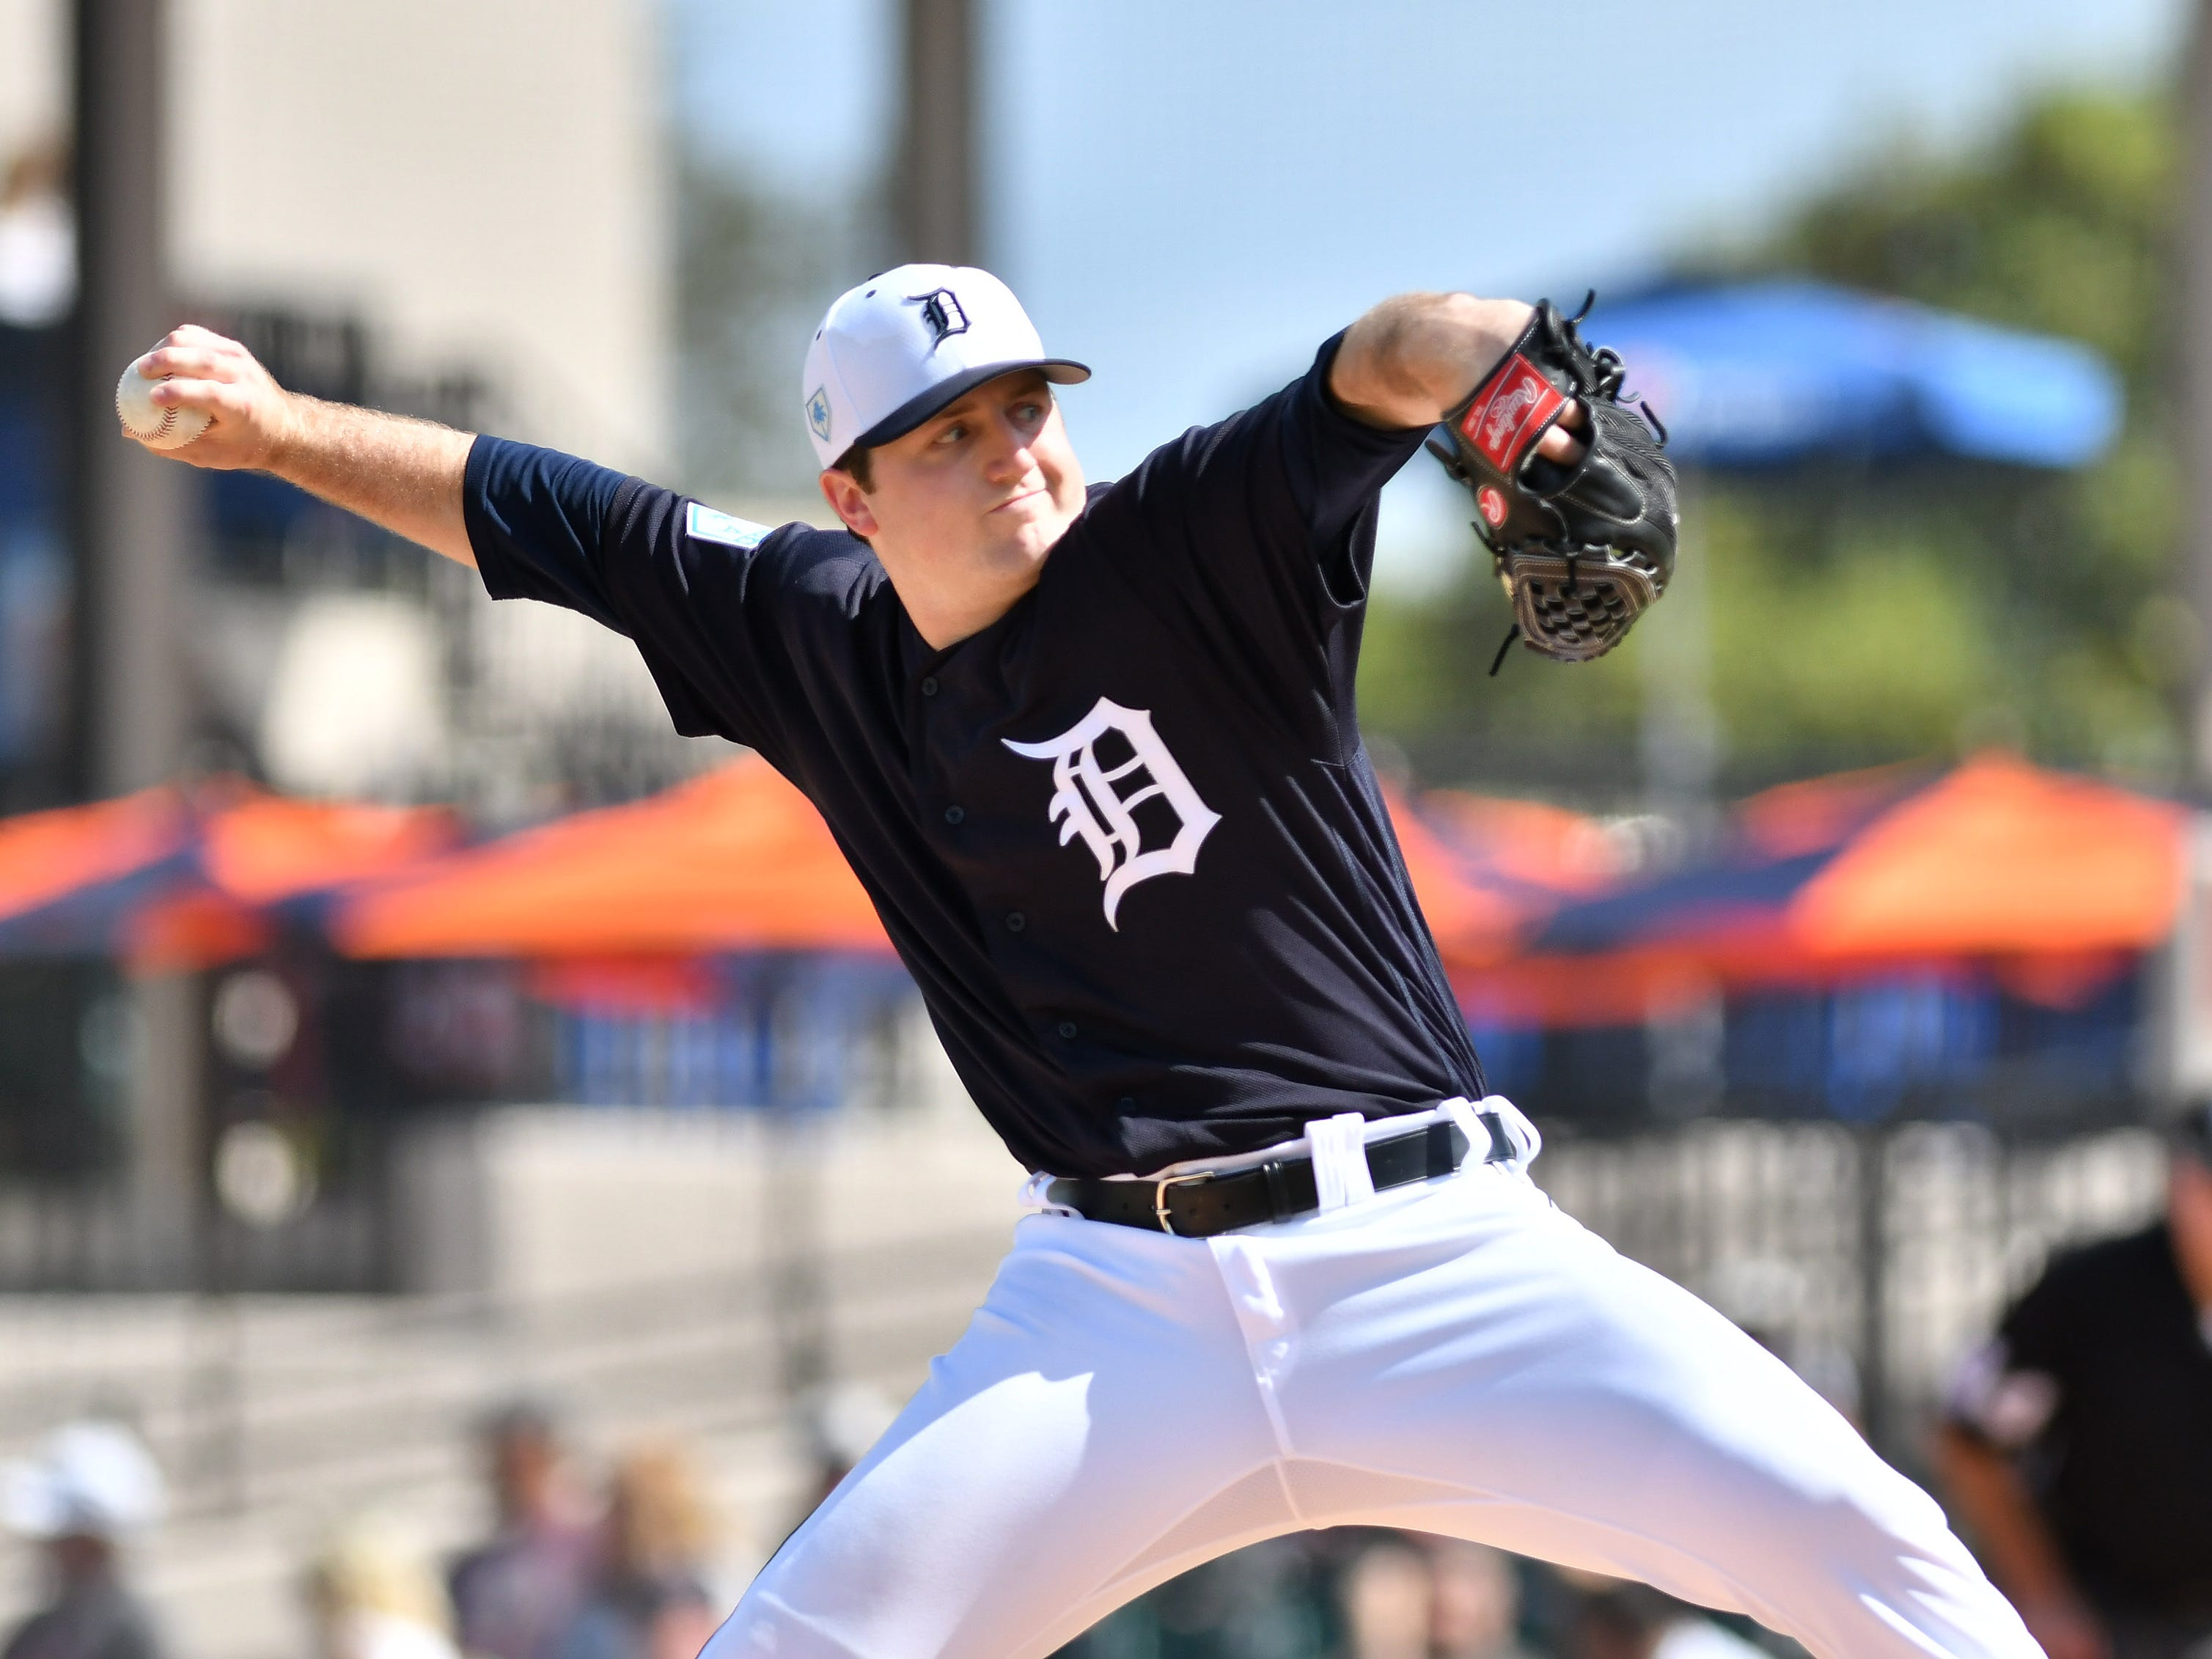 Tigers pitcher Casey Mize works in the third inning. Mize pitched two innings allowing three hits with one earned run and two strikeouts.